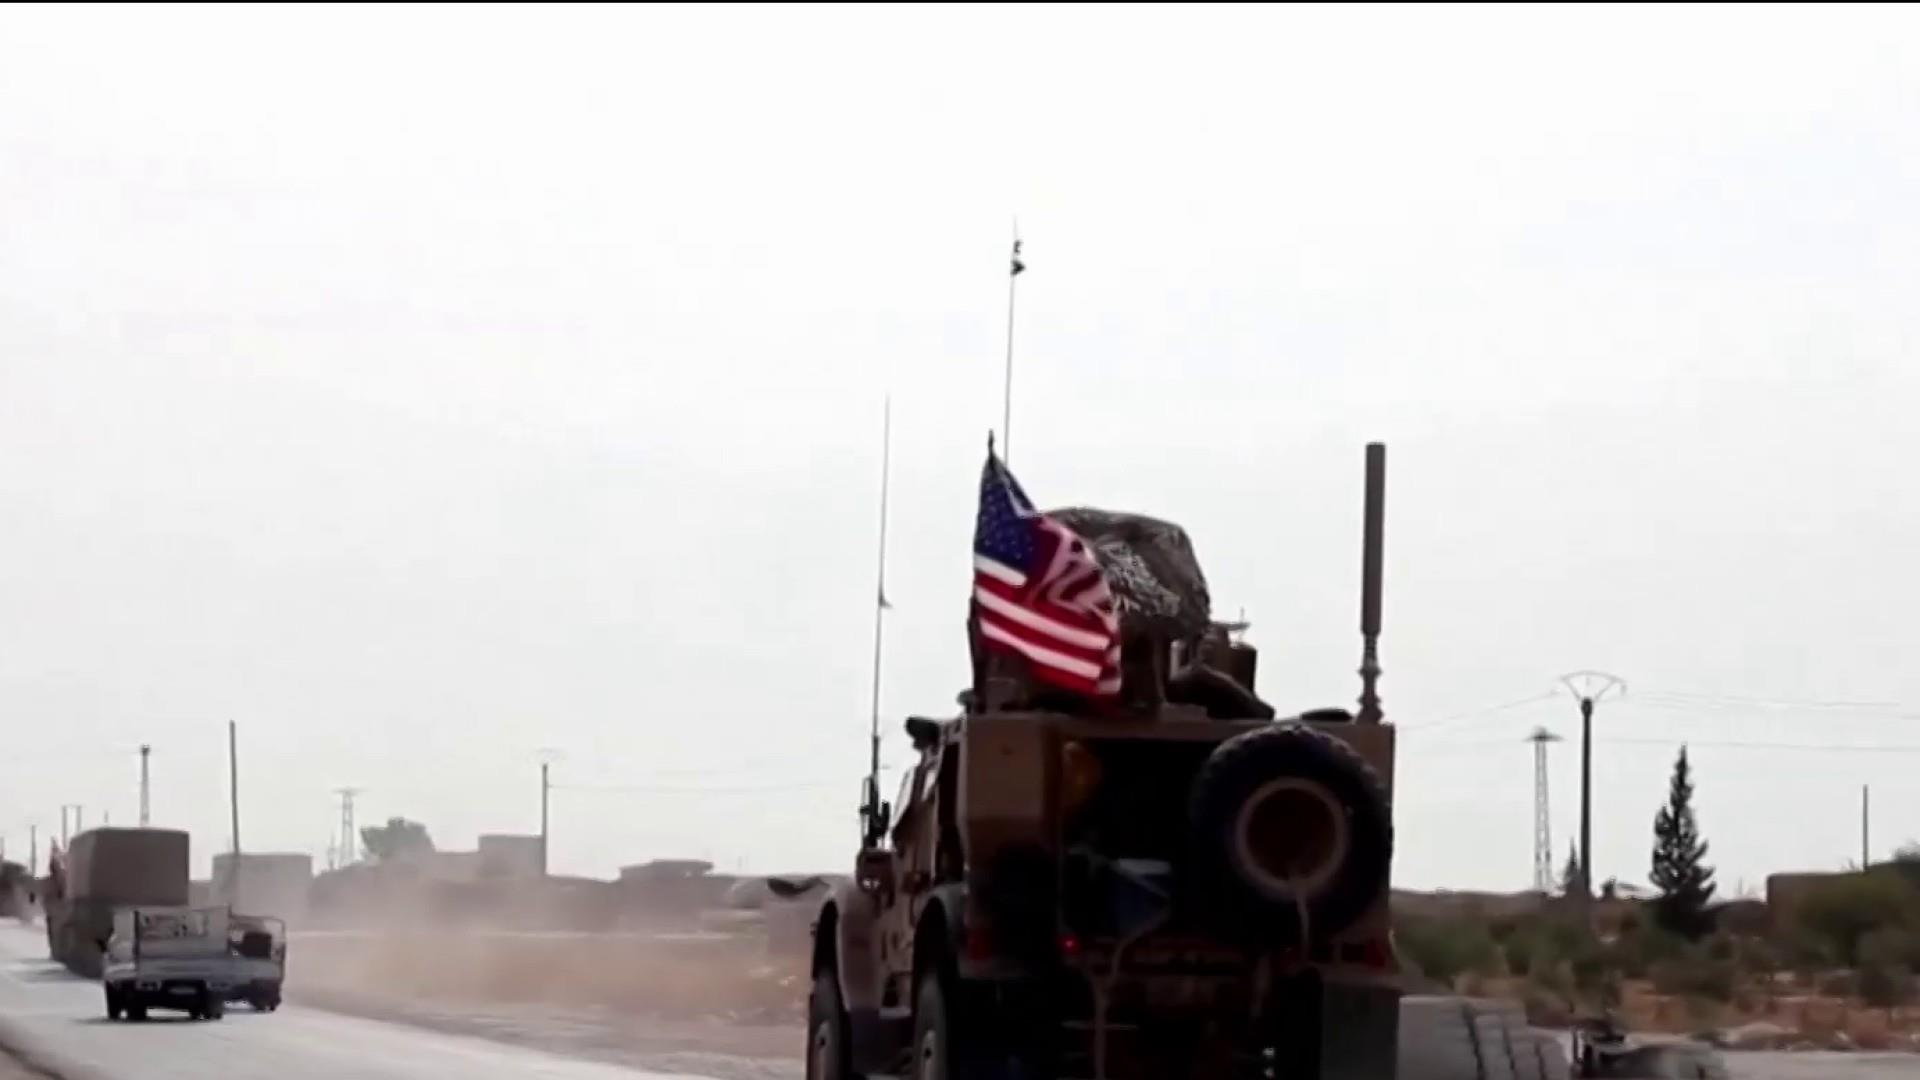 U.S. troops leaving Syria for western Iraq as Kurds pull back amid cease-fire